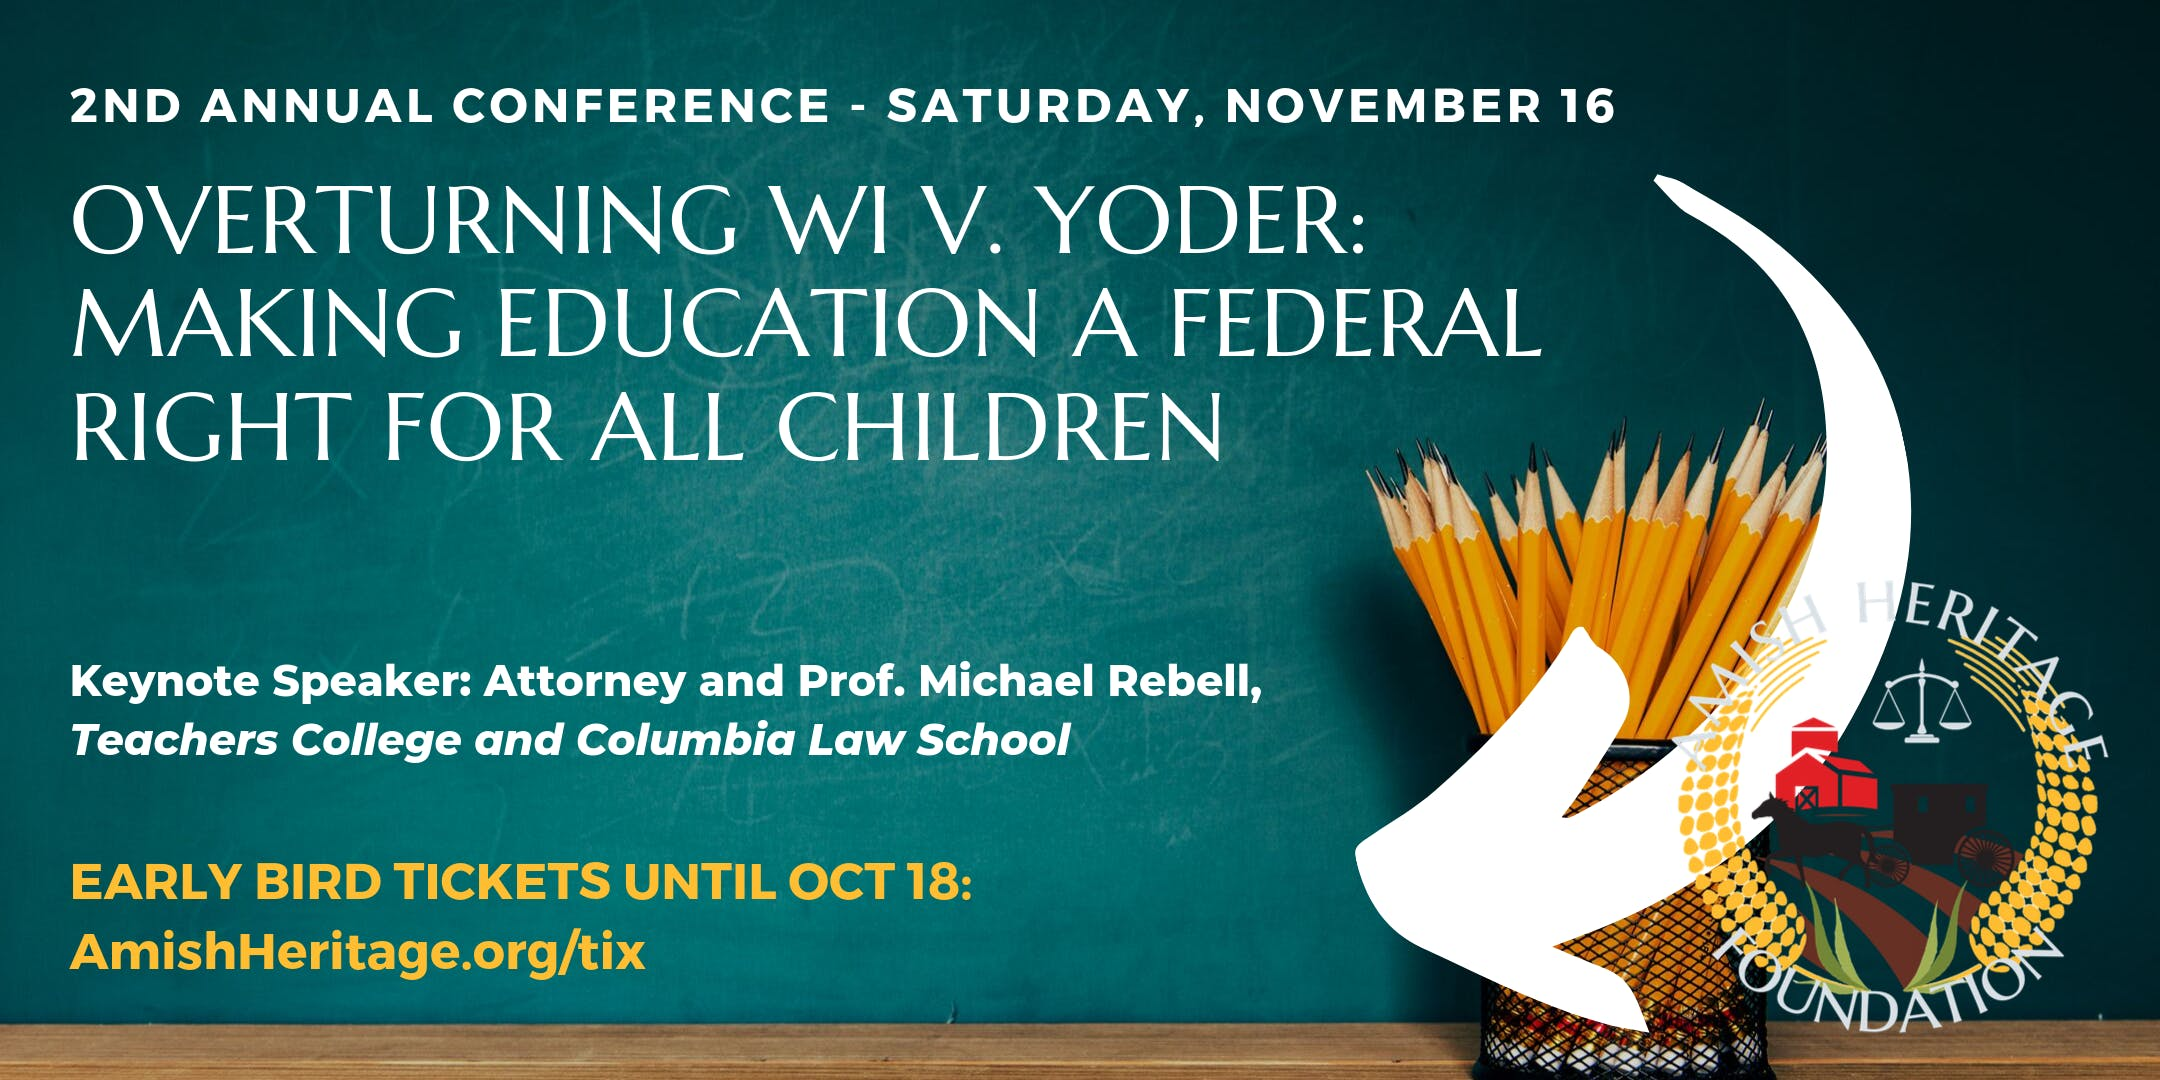 Overturning Wisconsin v. Yoder Making Education a Federal Right for All Children (2nd Annual Conference)